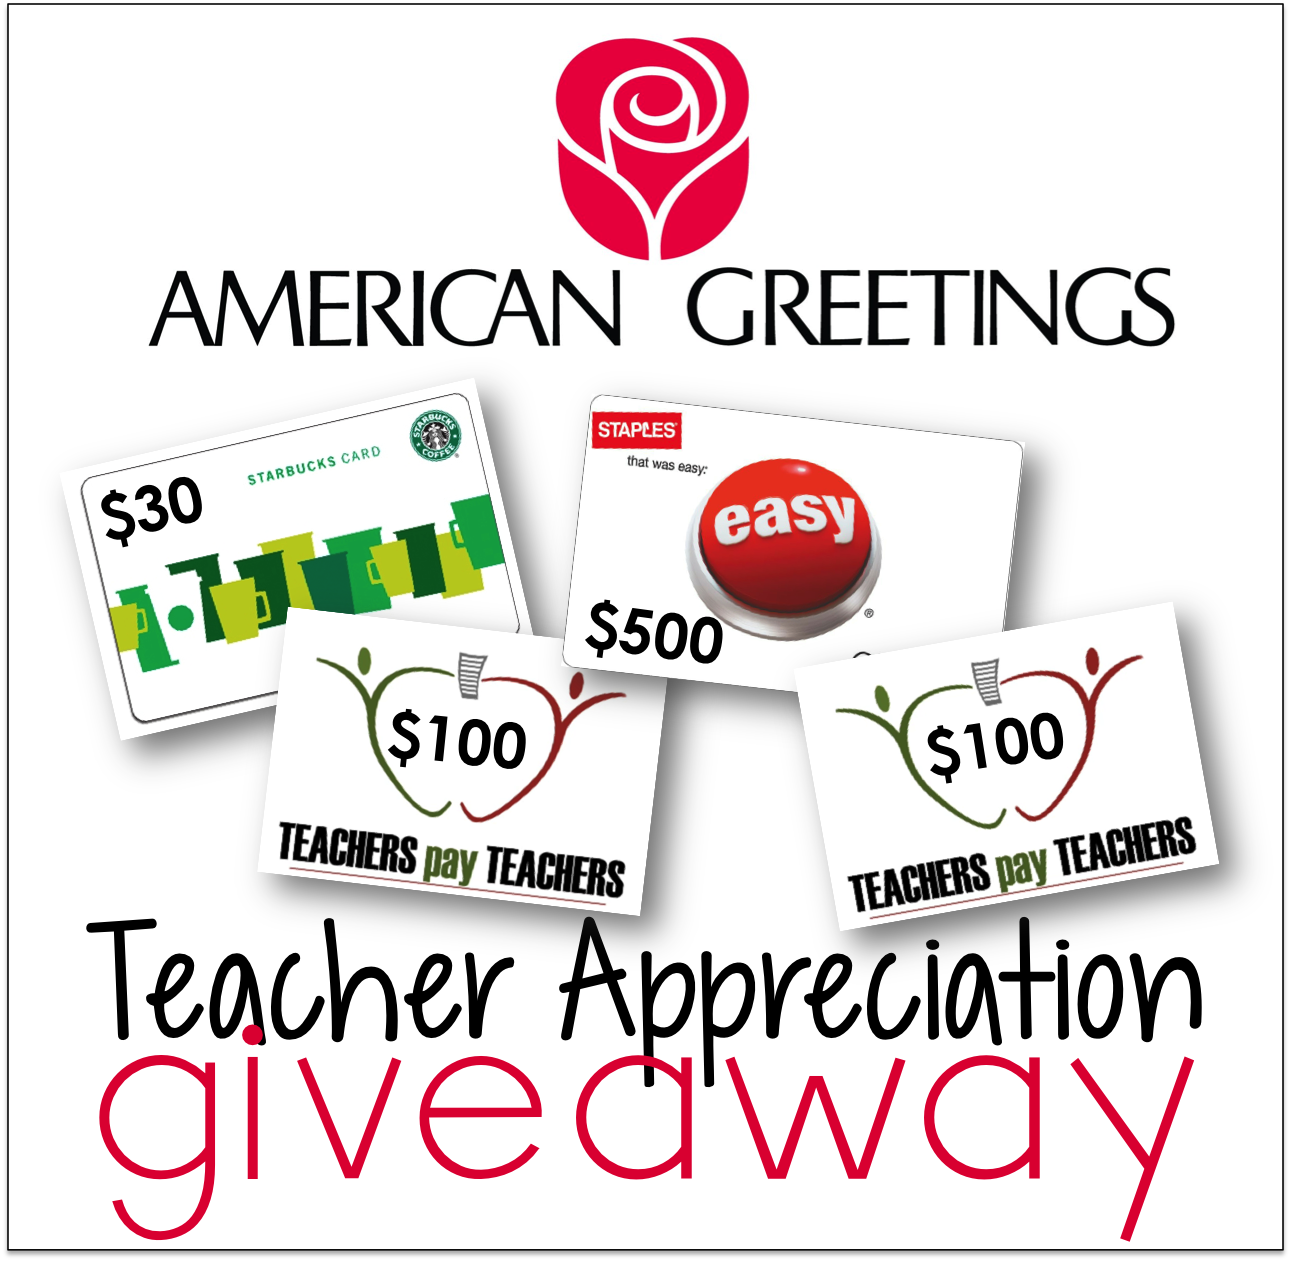 A Teacher Appreciation Giveaway From American Greetings